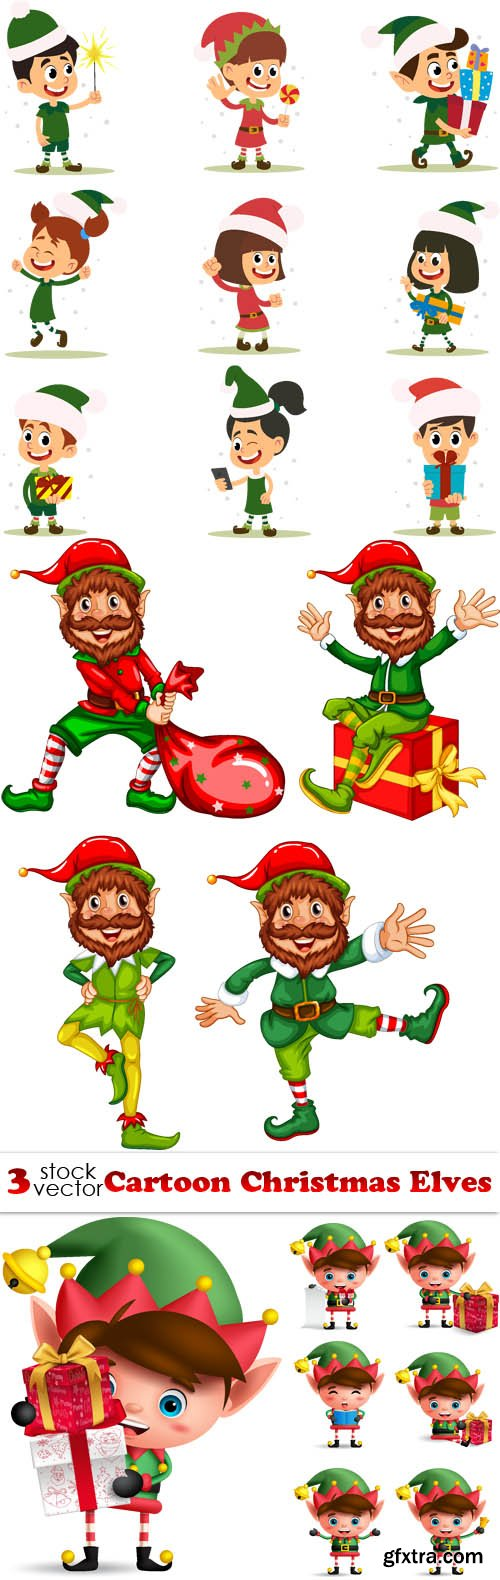 Vectors - Cartoon Christmas Elves